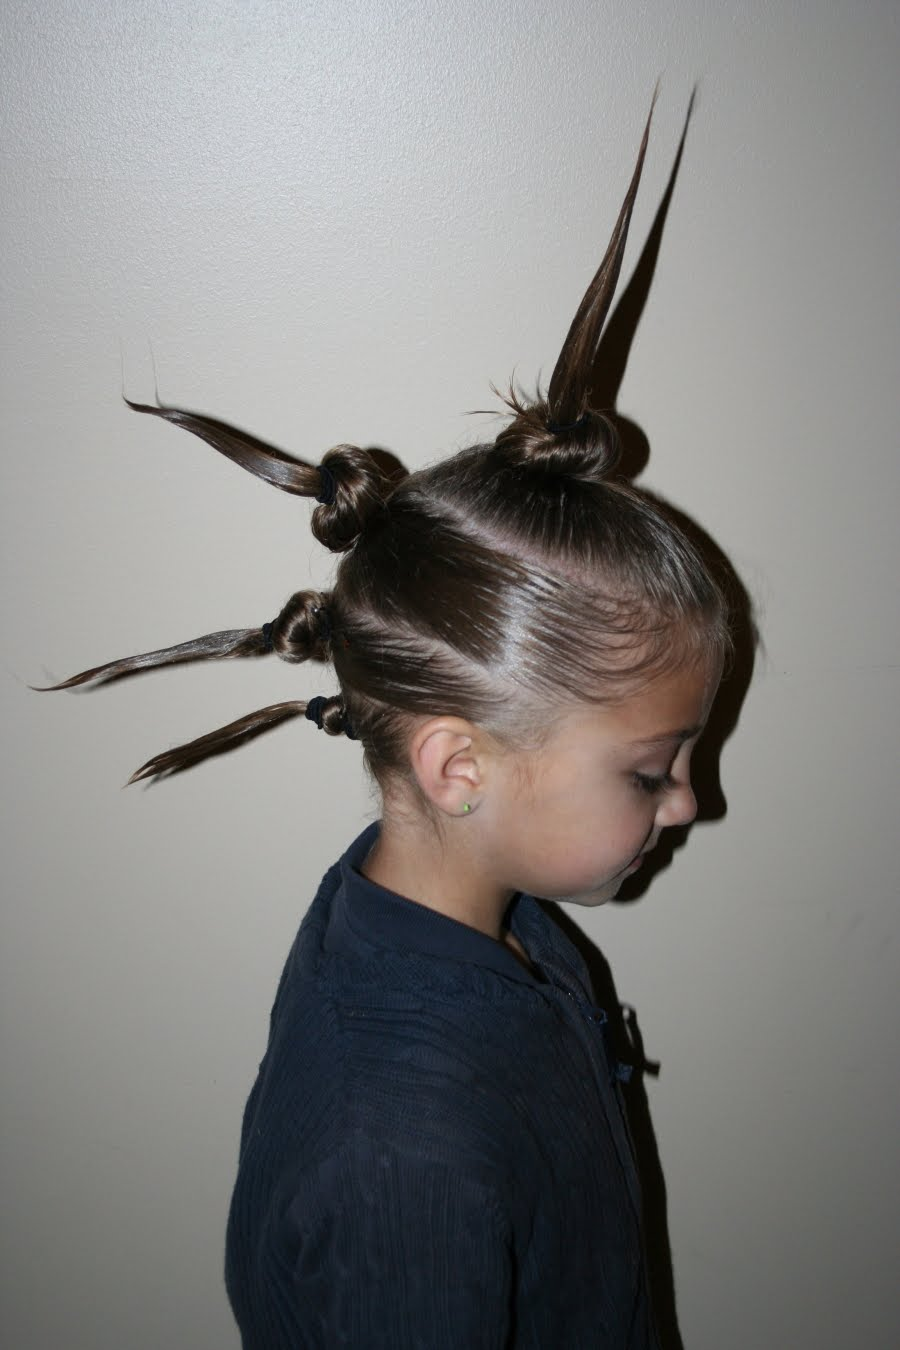 ... Crazy Hair Day! Please click Crazy Hair Day to see hairdo's from